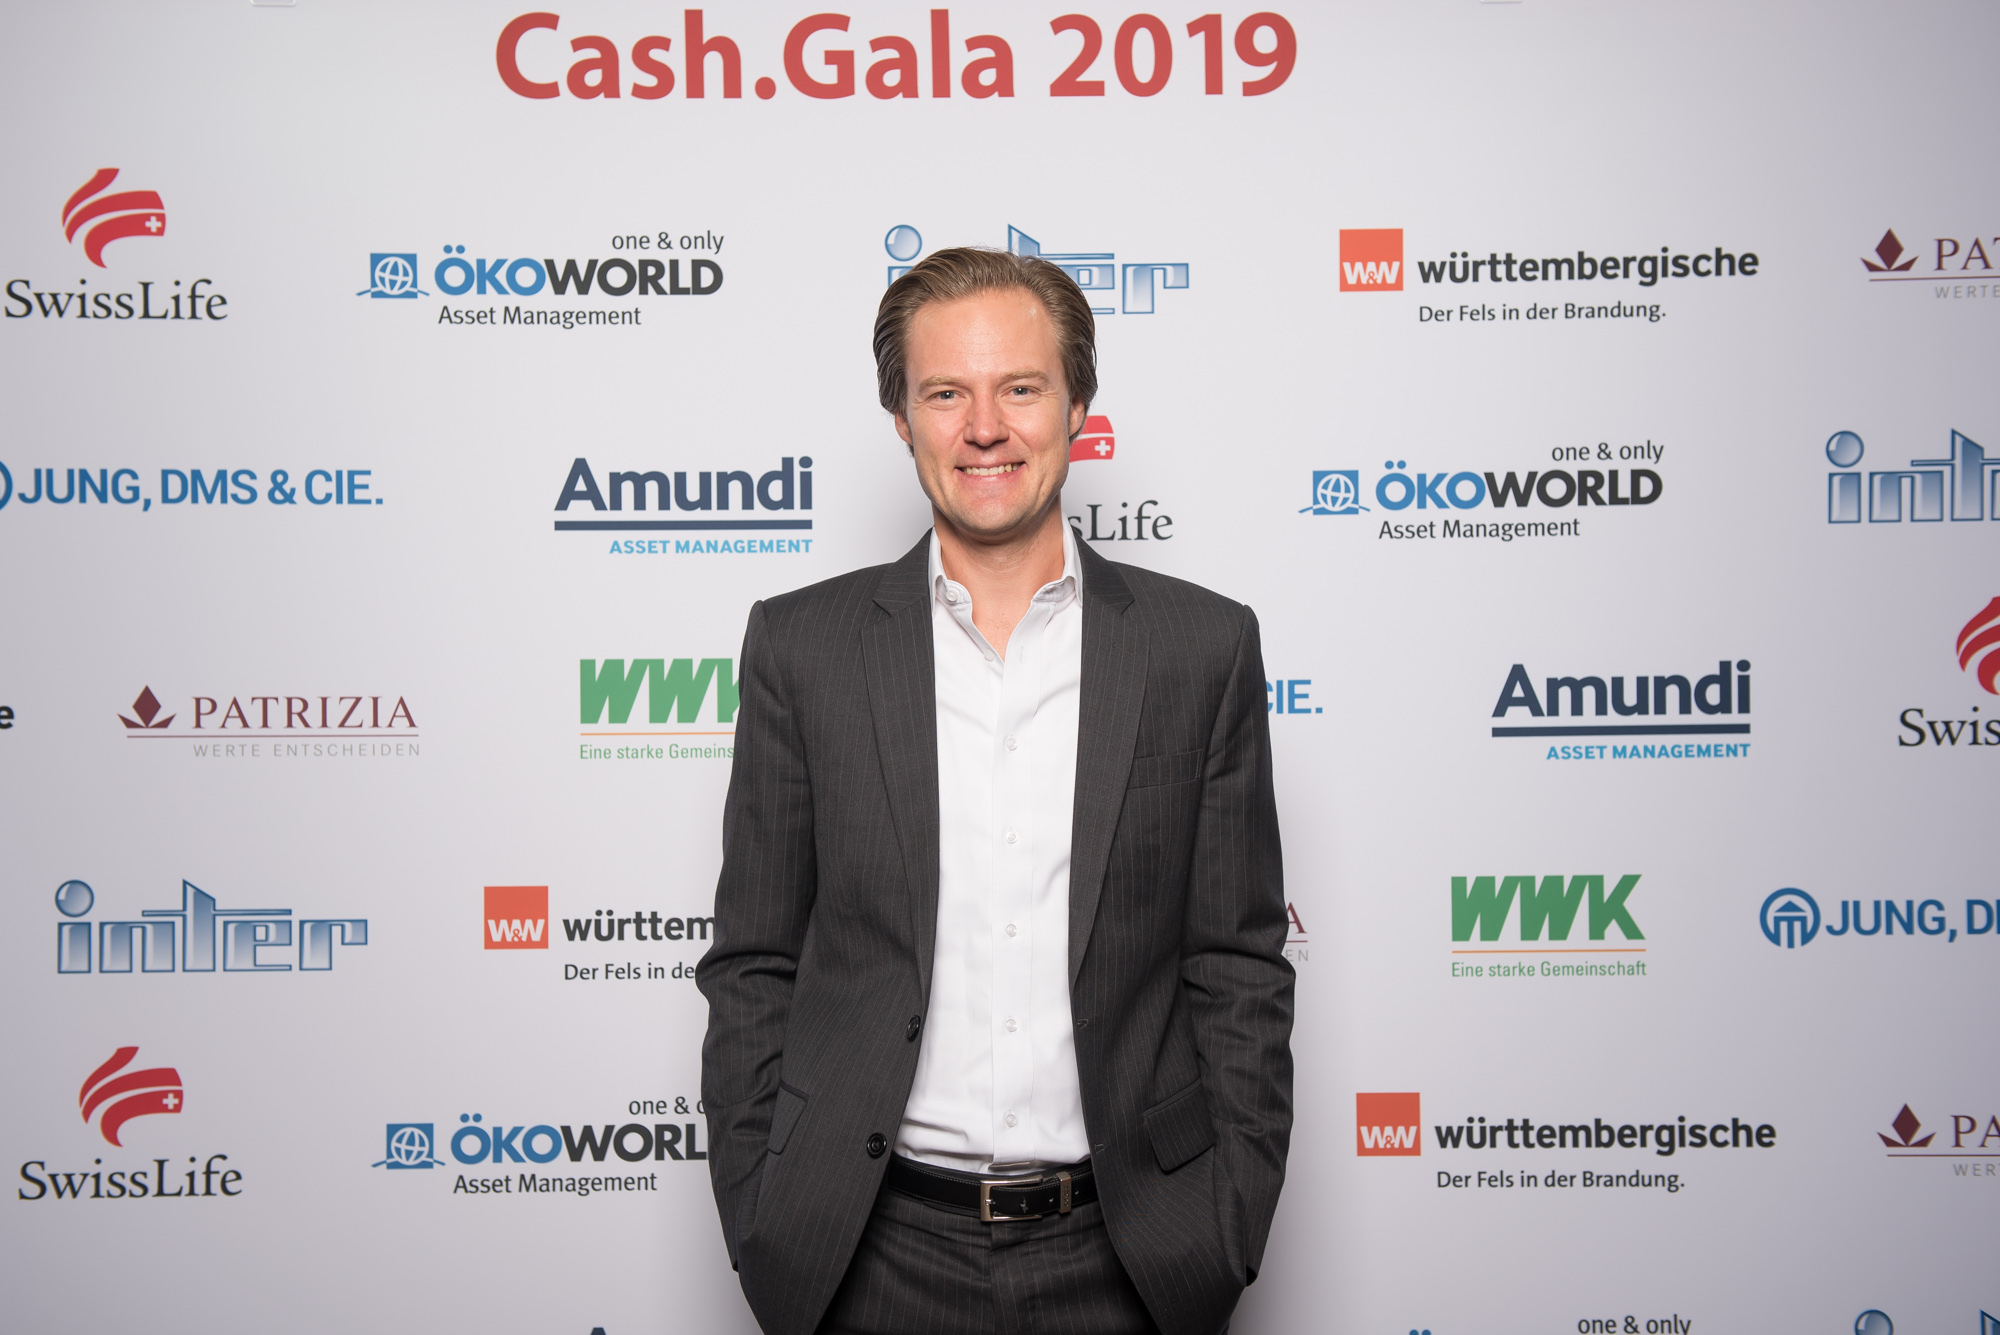 CashGala 2019 0019 AM DSC6996 in Cash.Gala 2019